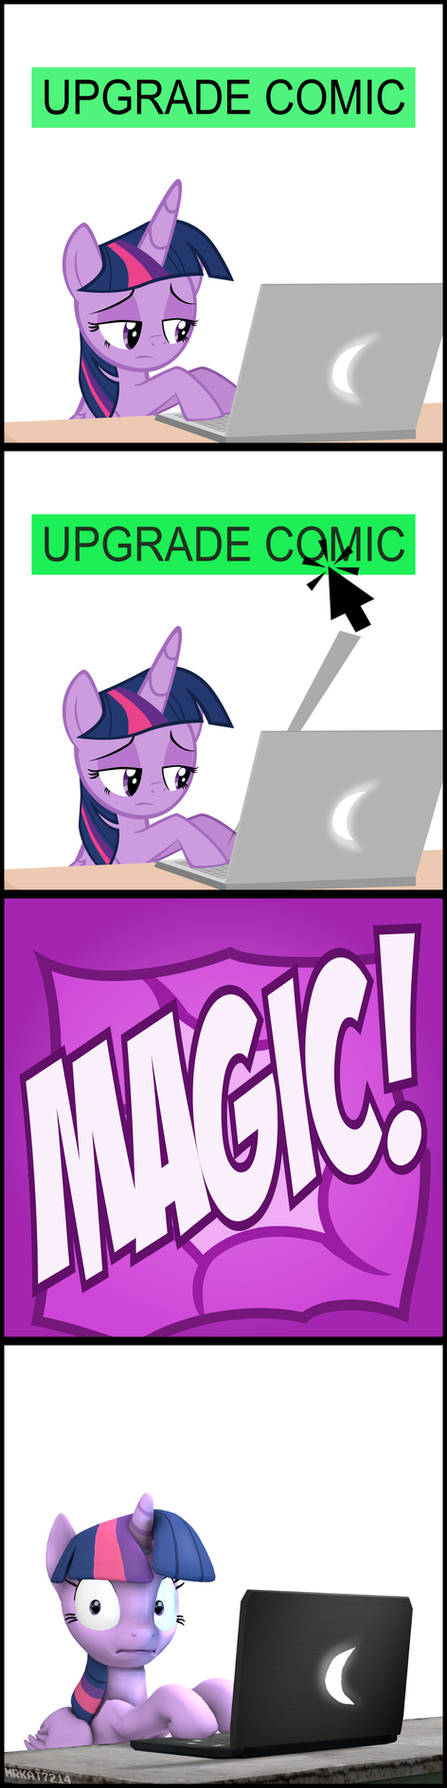 TwiVPC #21 - The Upgrade by MrKat7214